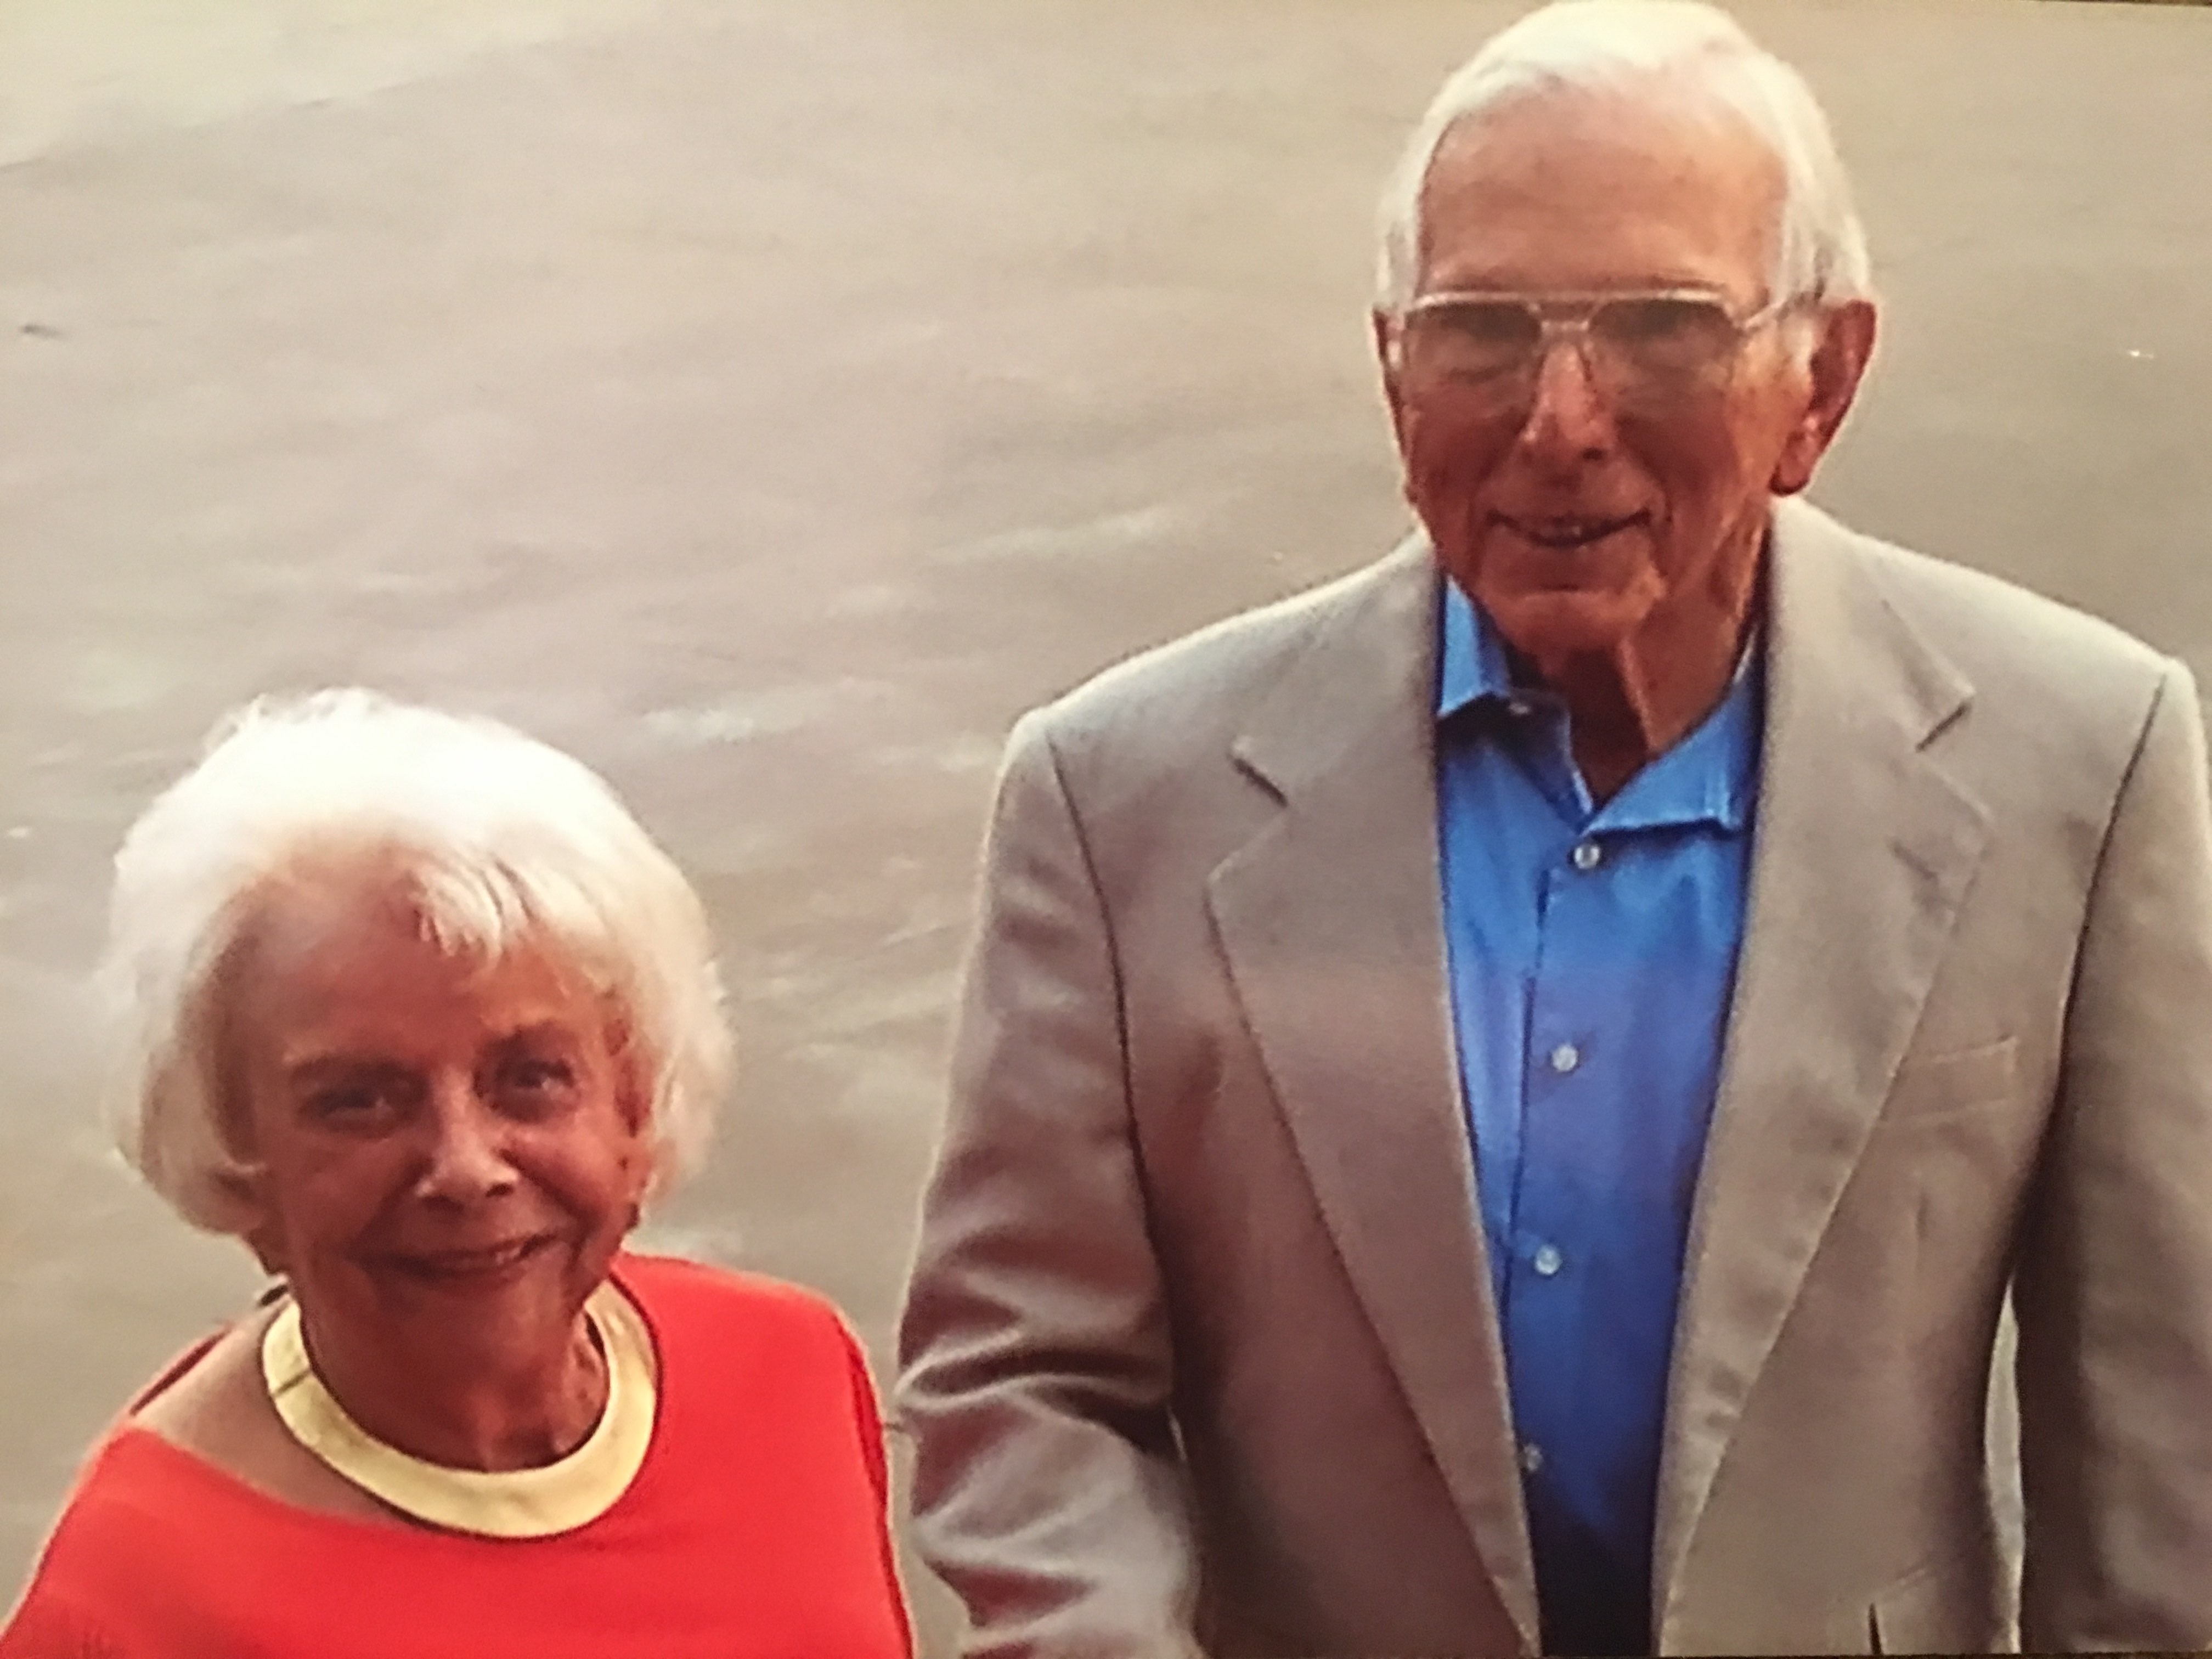 The Remarkable Story Of How 1 Couple In Their 90s Found Each Other